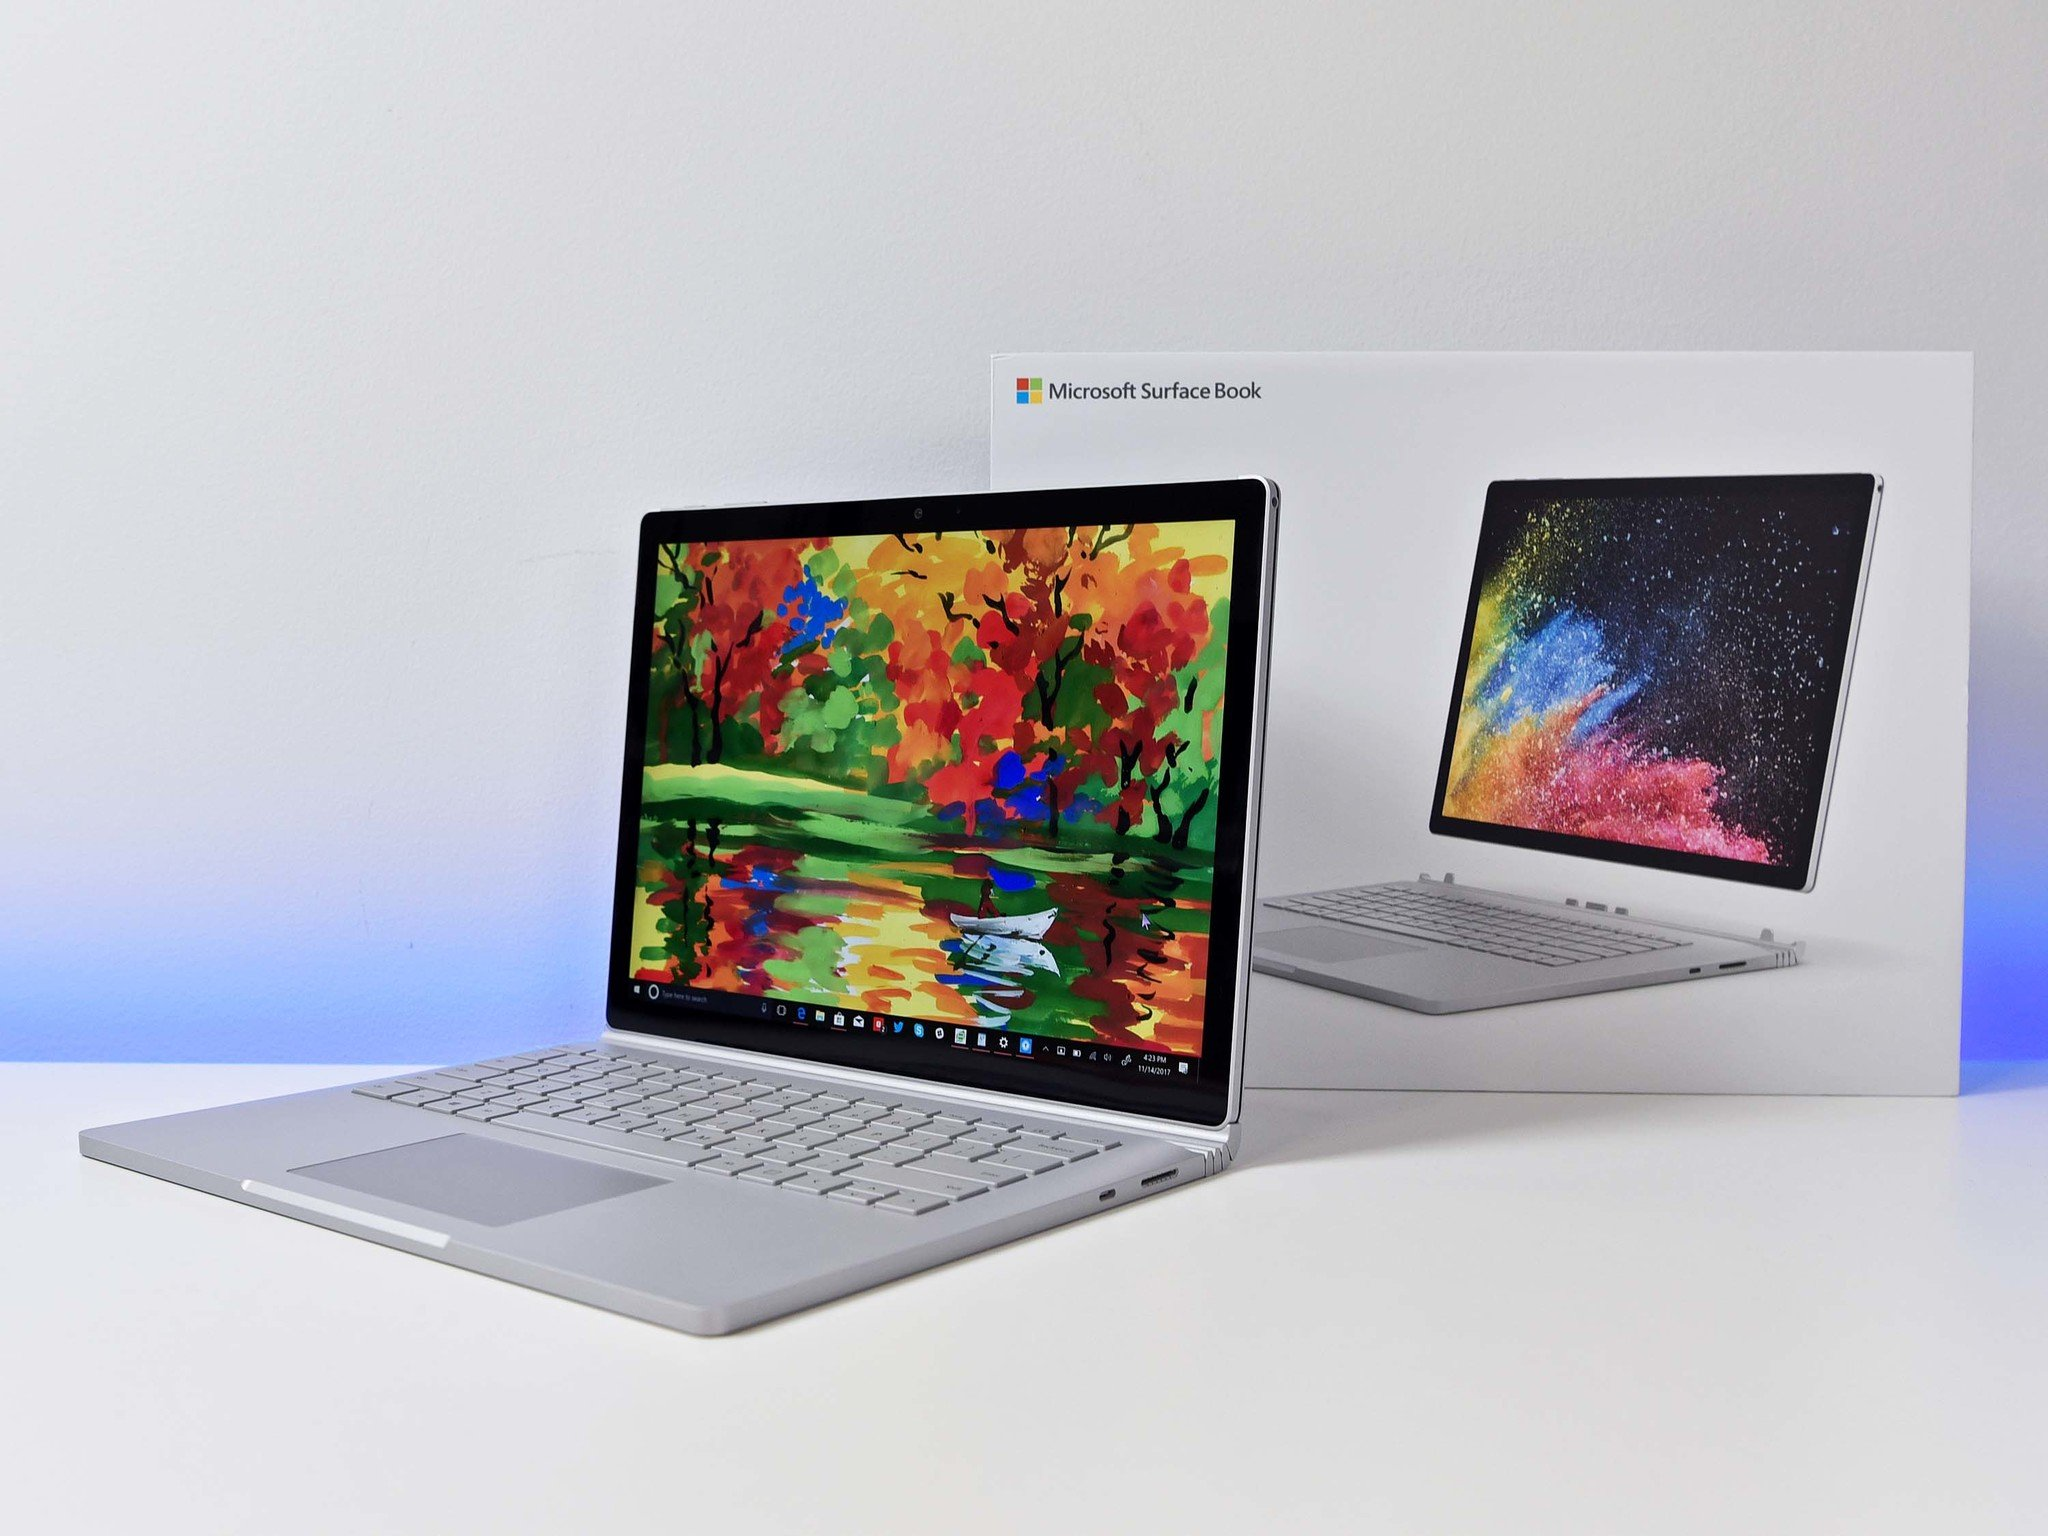 Fall Wallpaper Photos Microsoft Surface Book 2 13 Inch Review A Good Thing Made Great